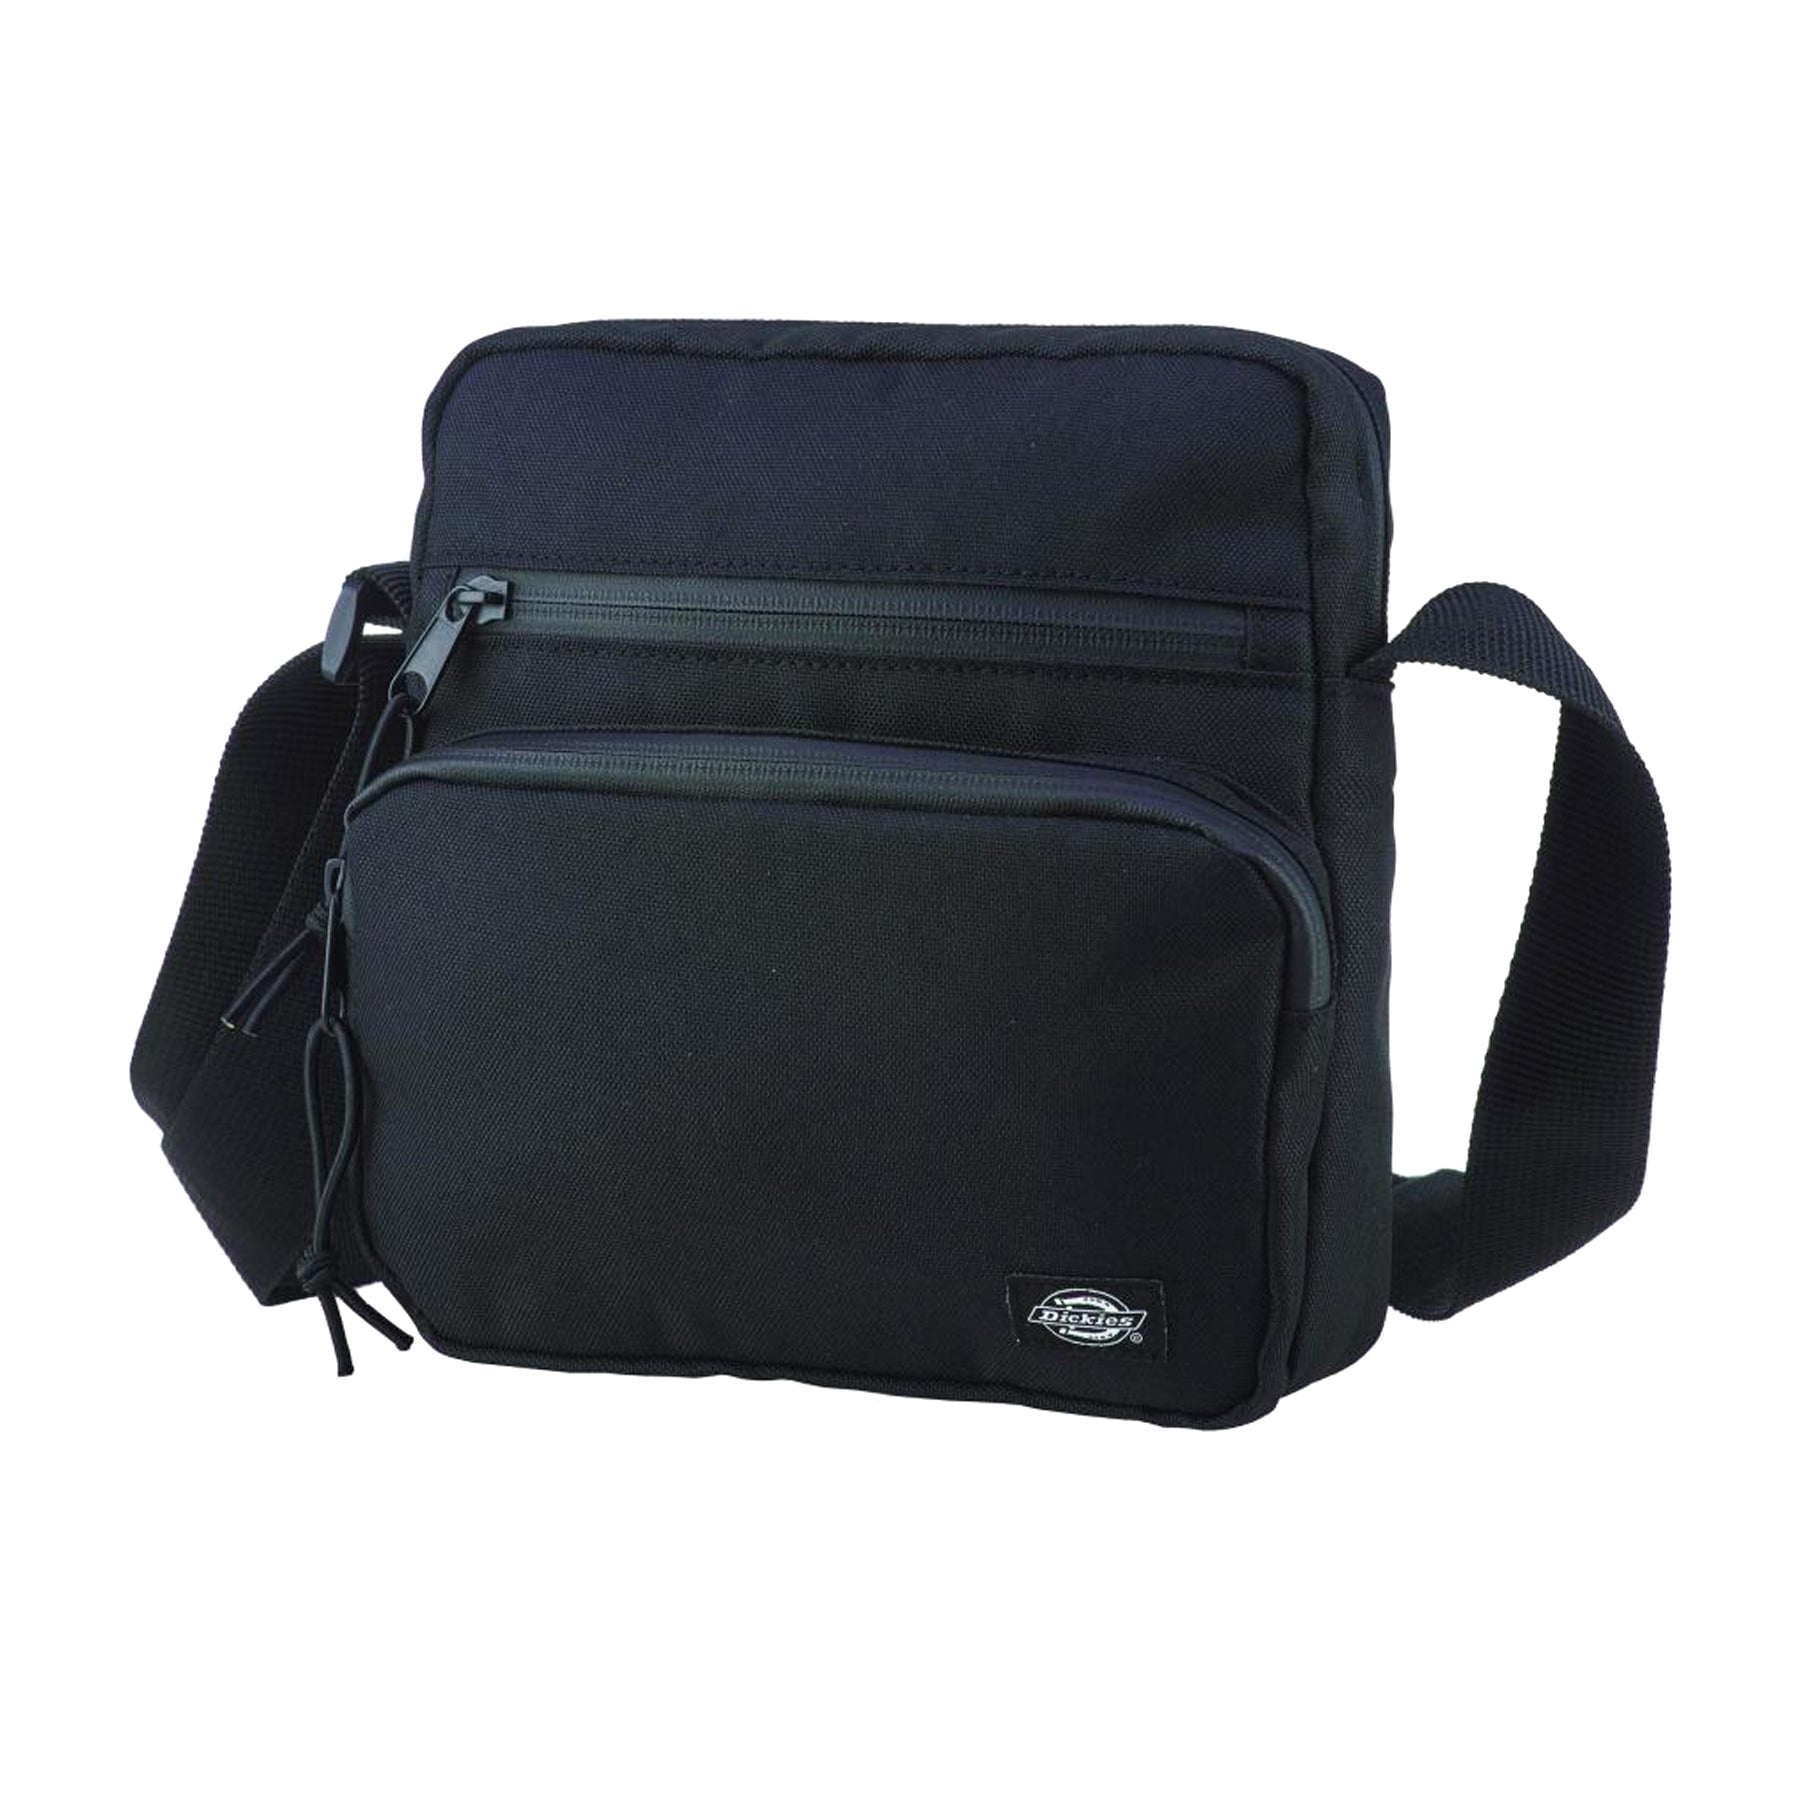 Dickies Gilmer Messenger Bag - Black